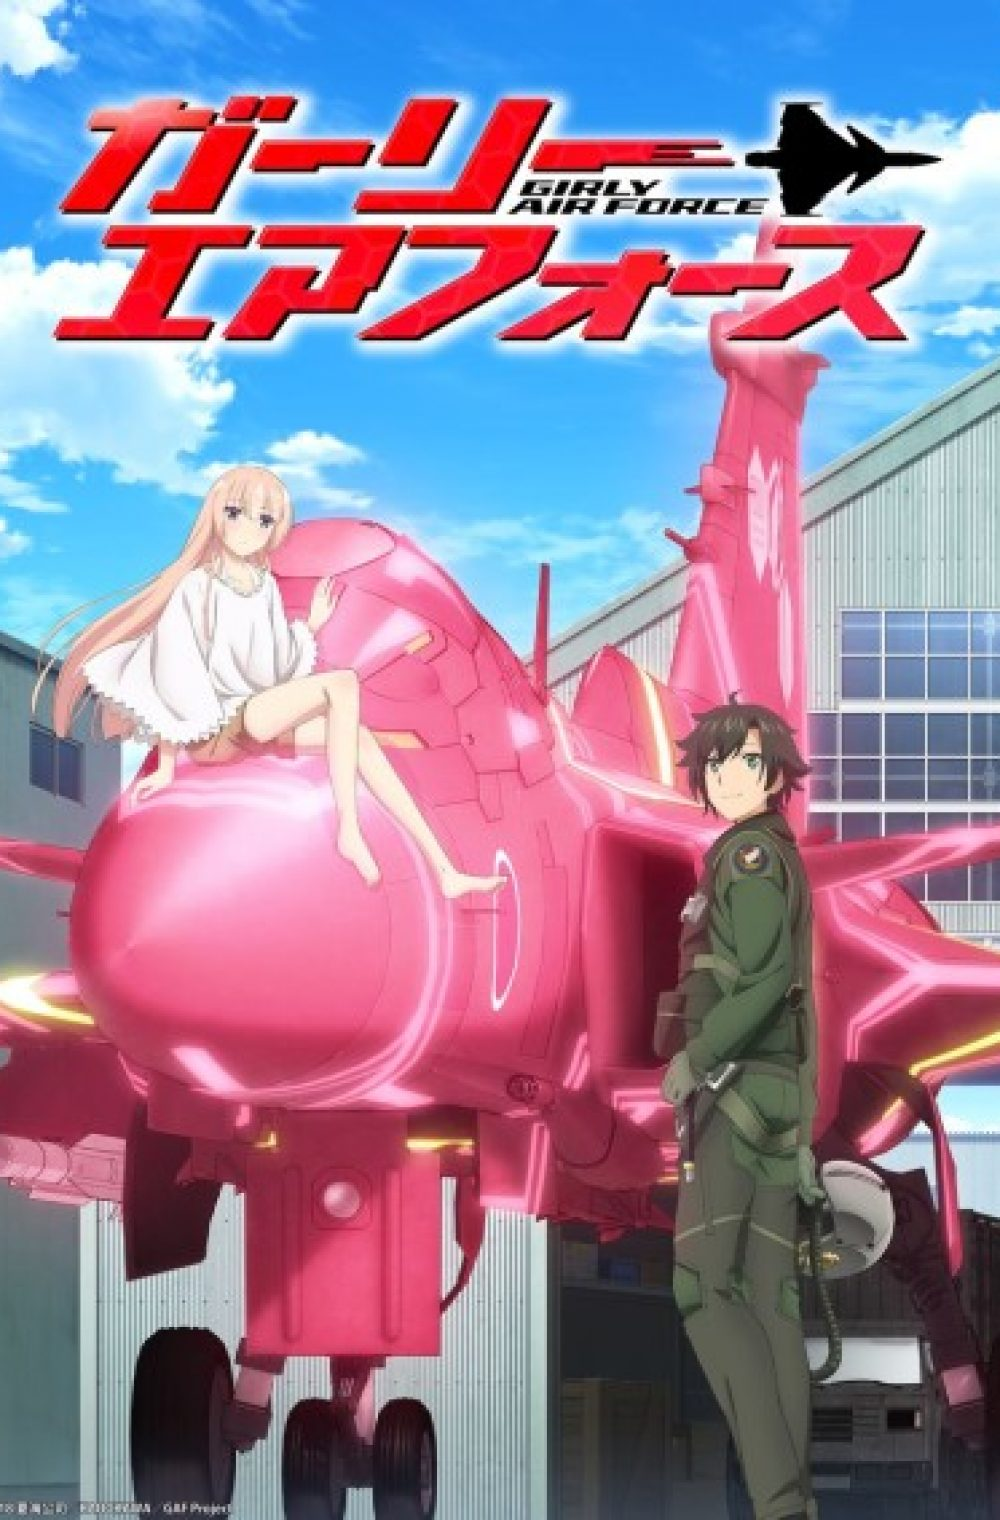 Girly Air Force (Bluray Ver.)